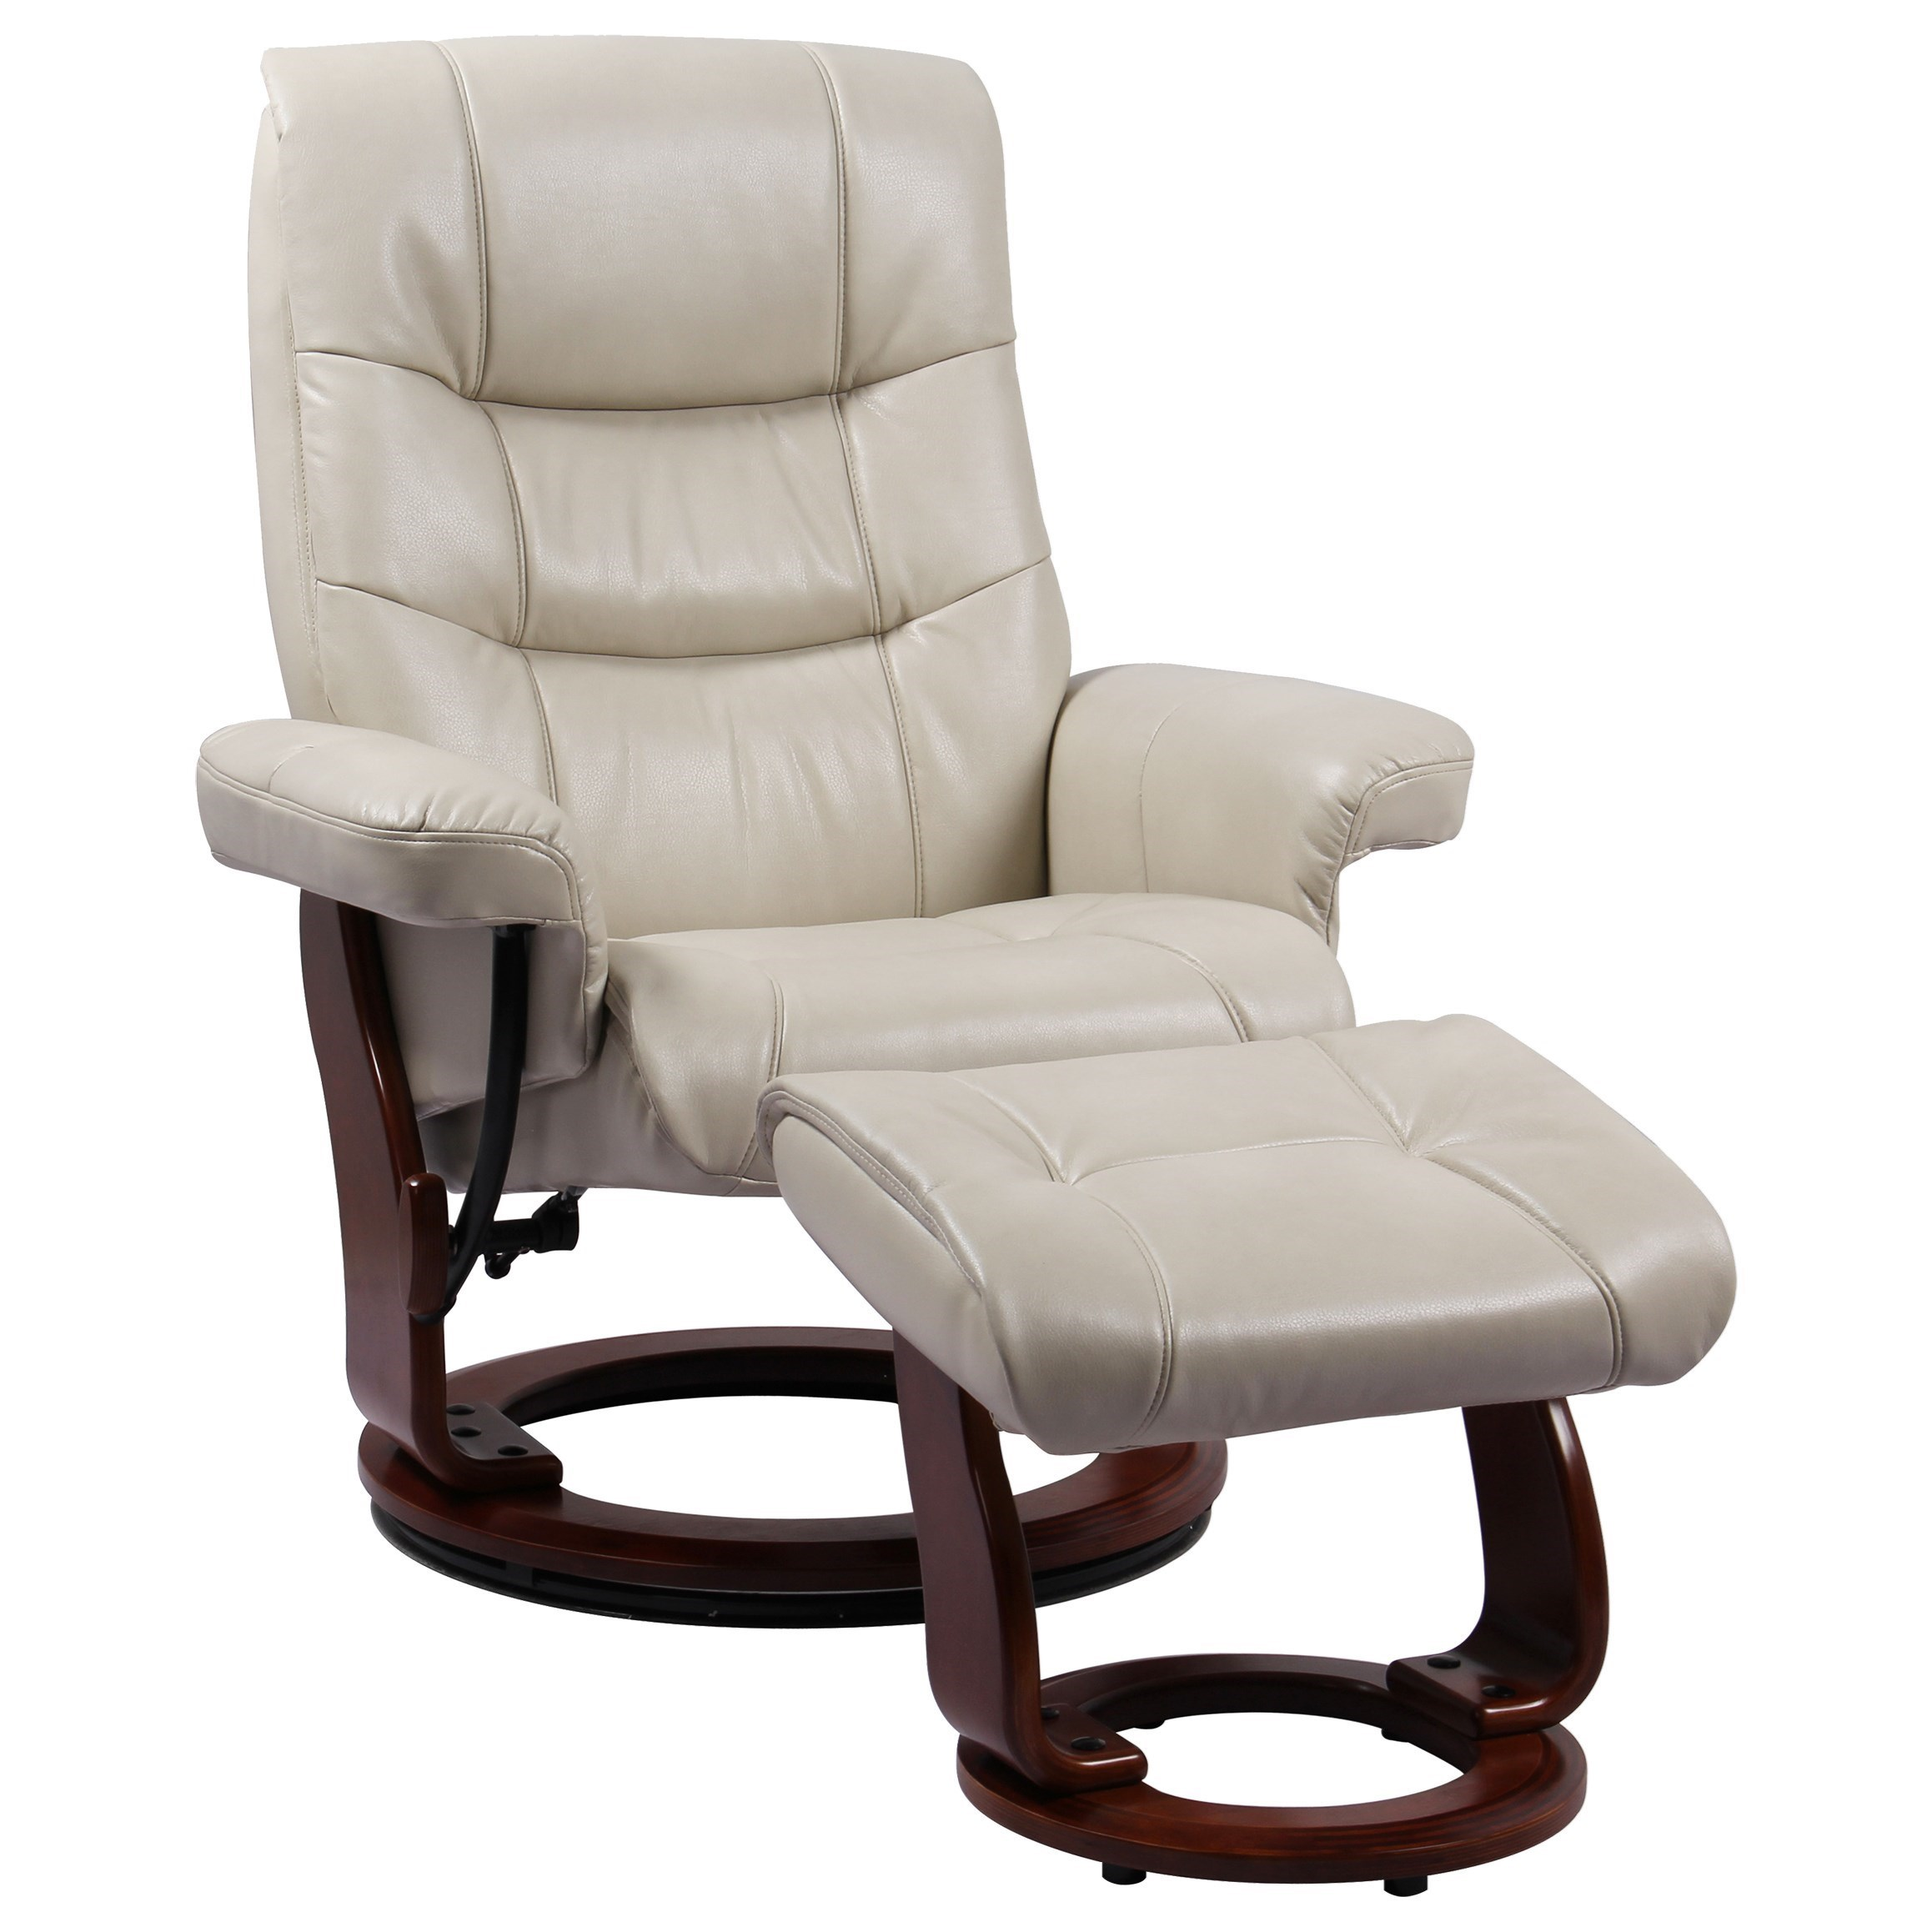 Chair Ottoman Rosa Ii Reclining Chair With Ottoman By Benchmaster At Wayside Furniture